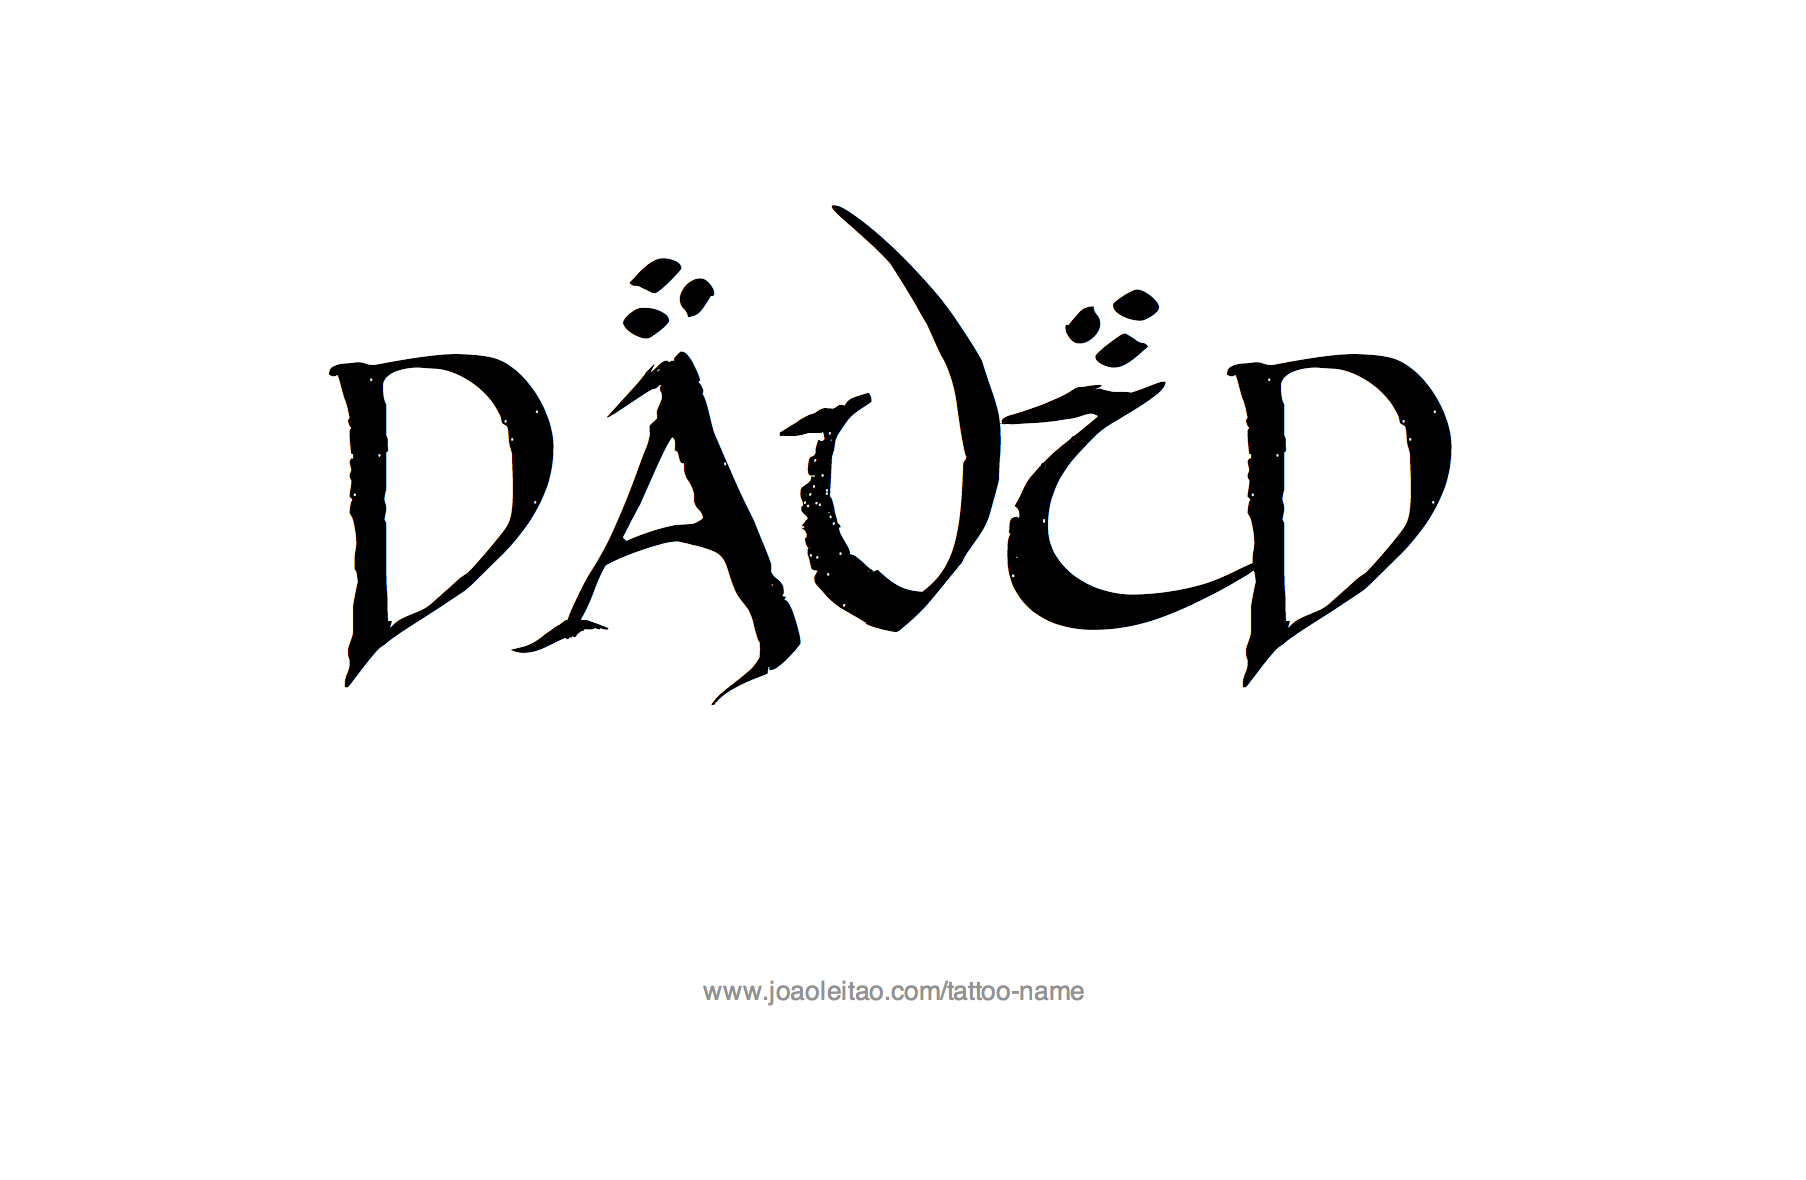 ca1be06f3ebb5 David Name Tattoo Designs | Proyectos que debo intentar | Name ...